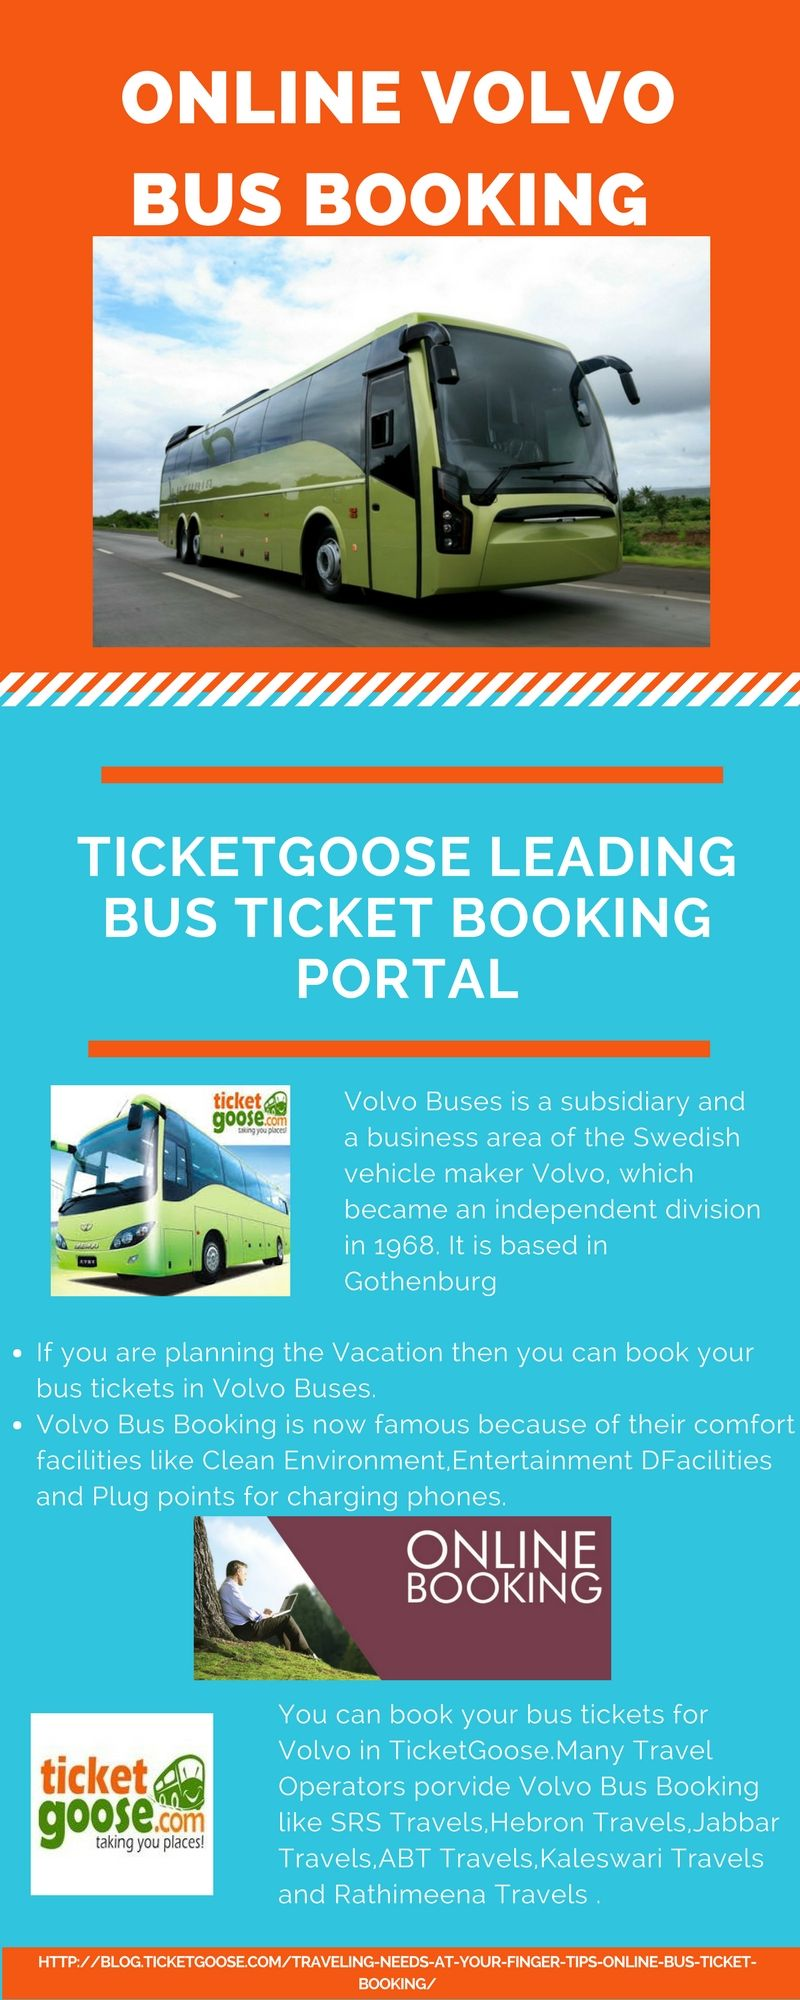 Traveling Needs At Your Finger Tips Online Bus Ticket Booking